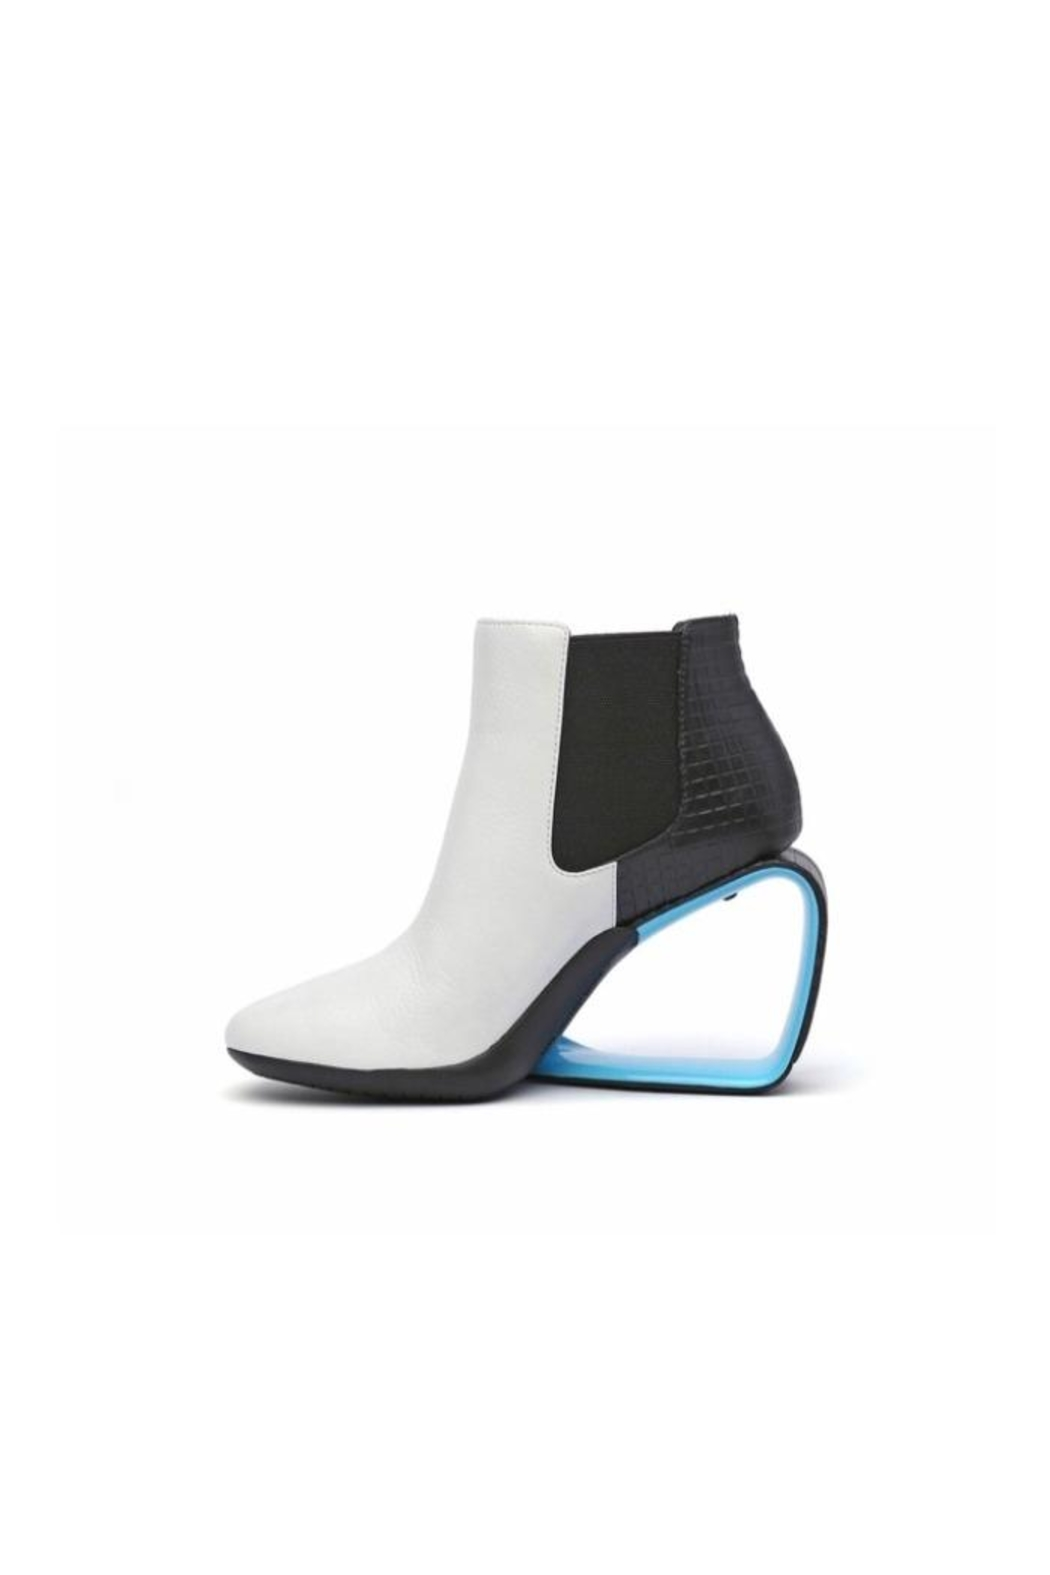 United Nude Hollow Heel Bootie - Main Image